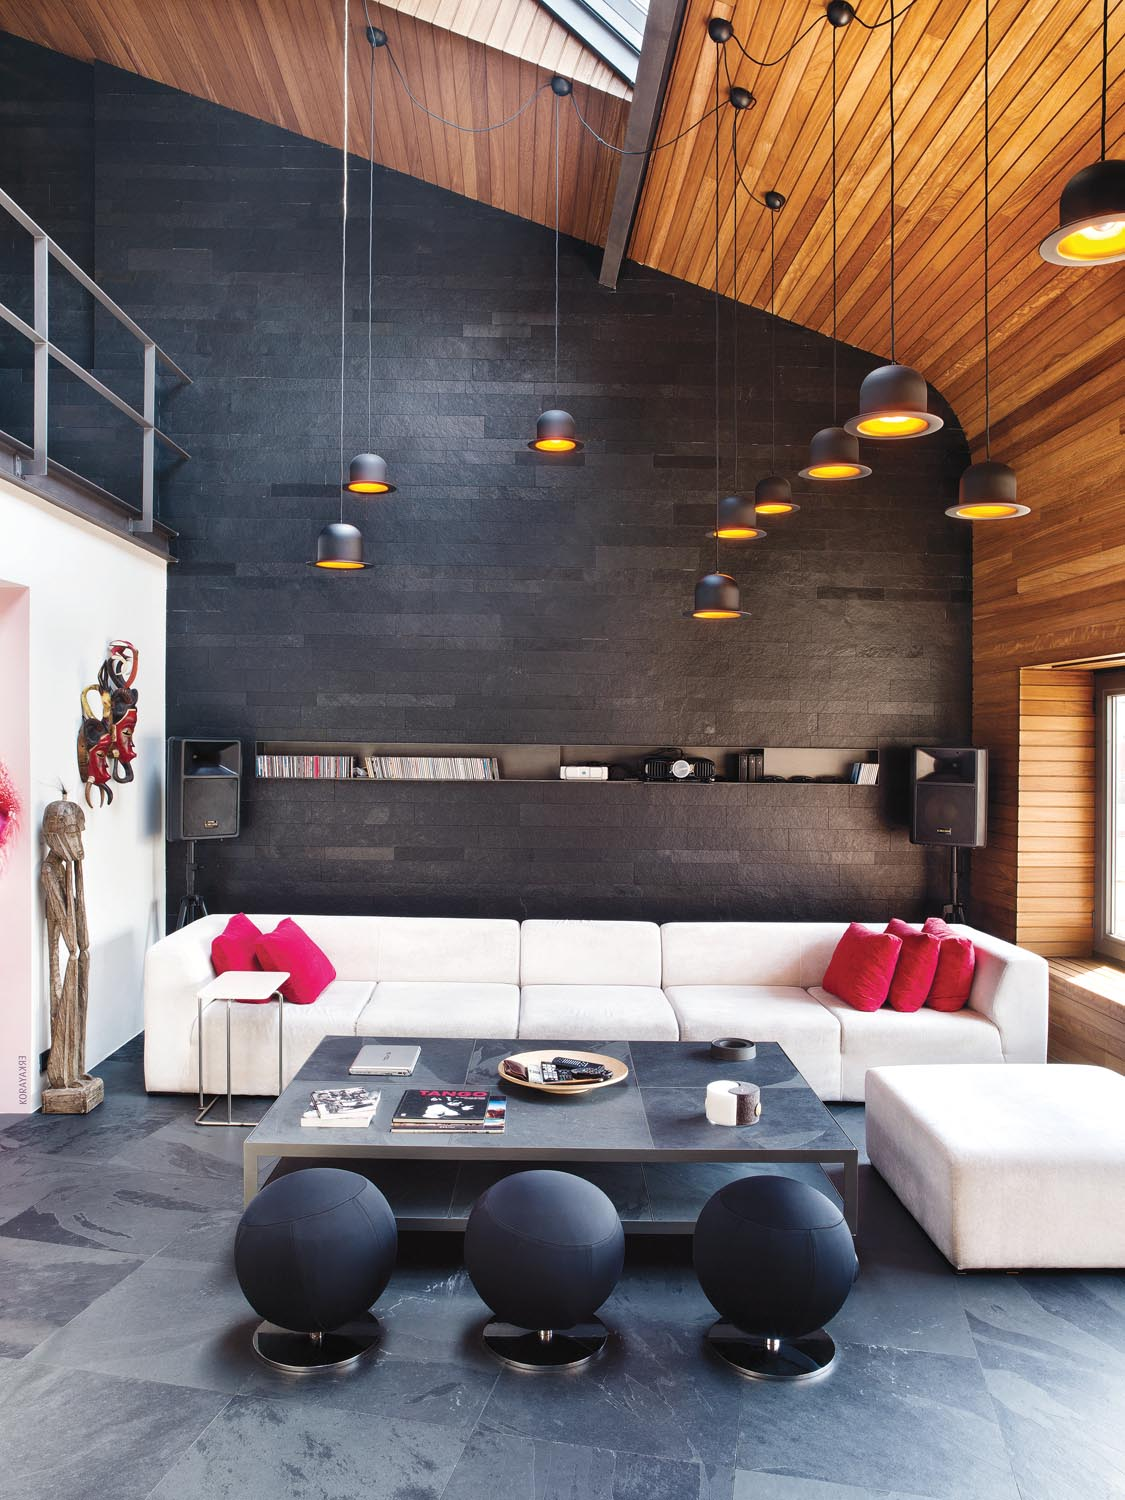 Clusters of lights utilise the high ceilings by hanging at different lengths